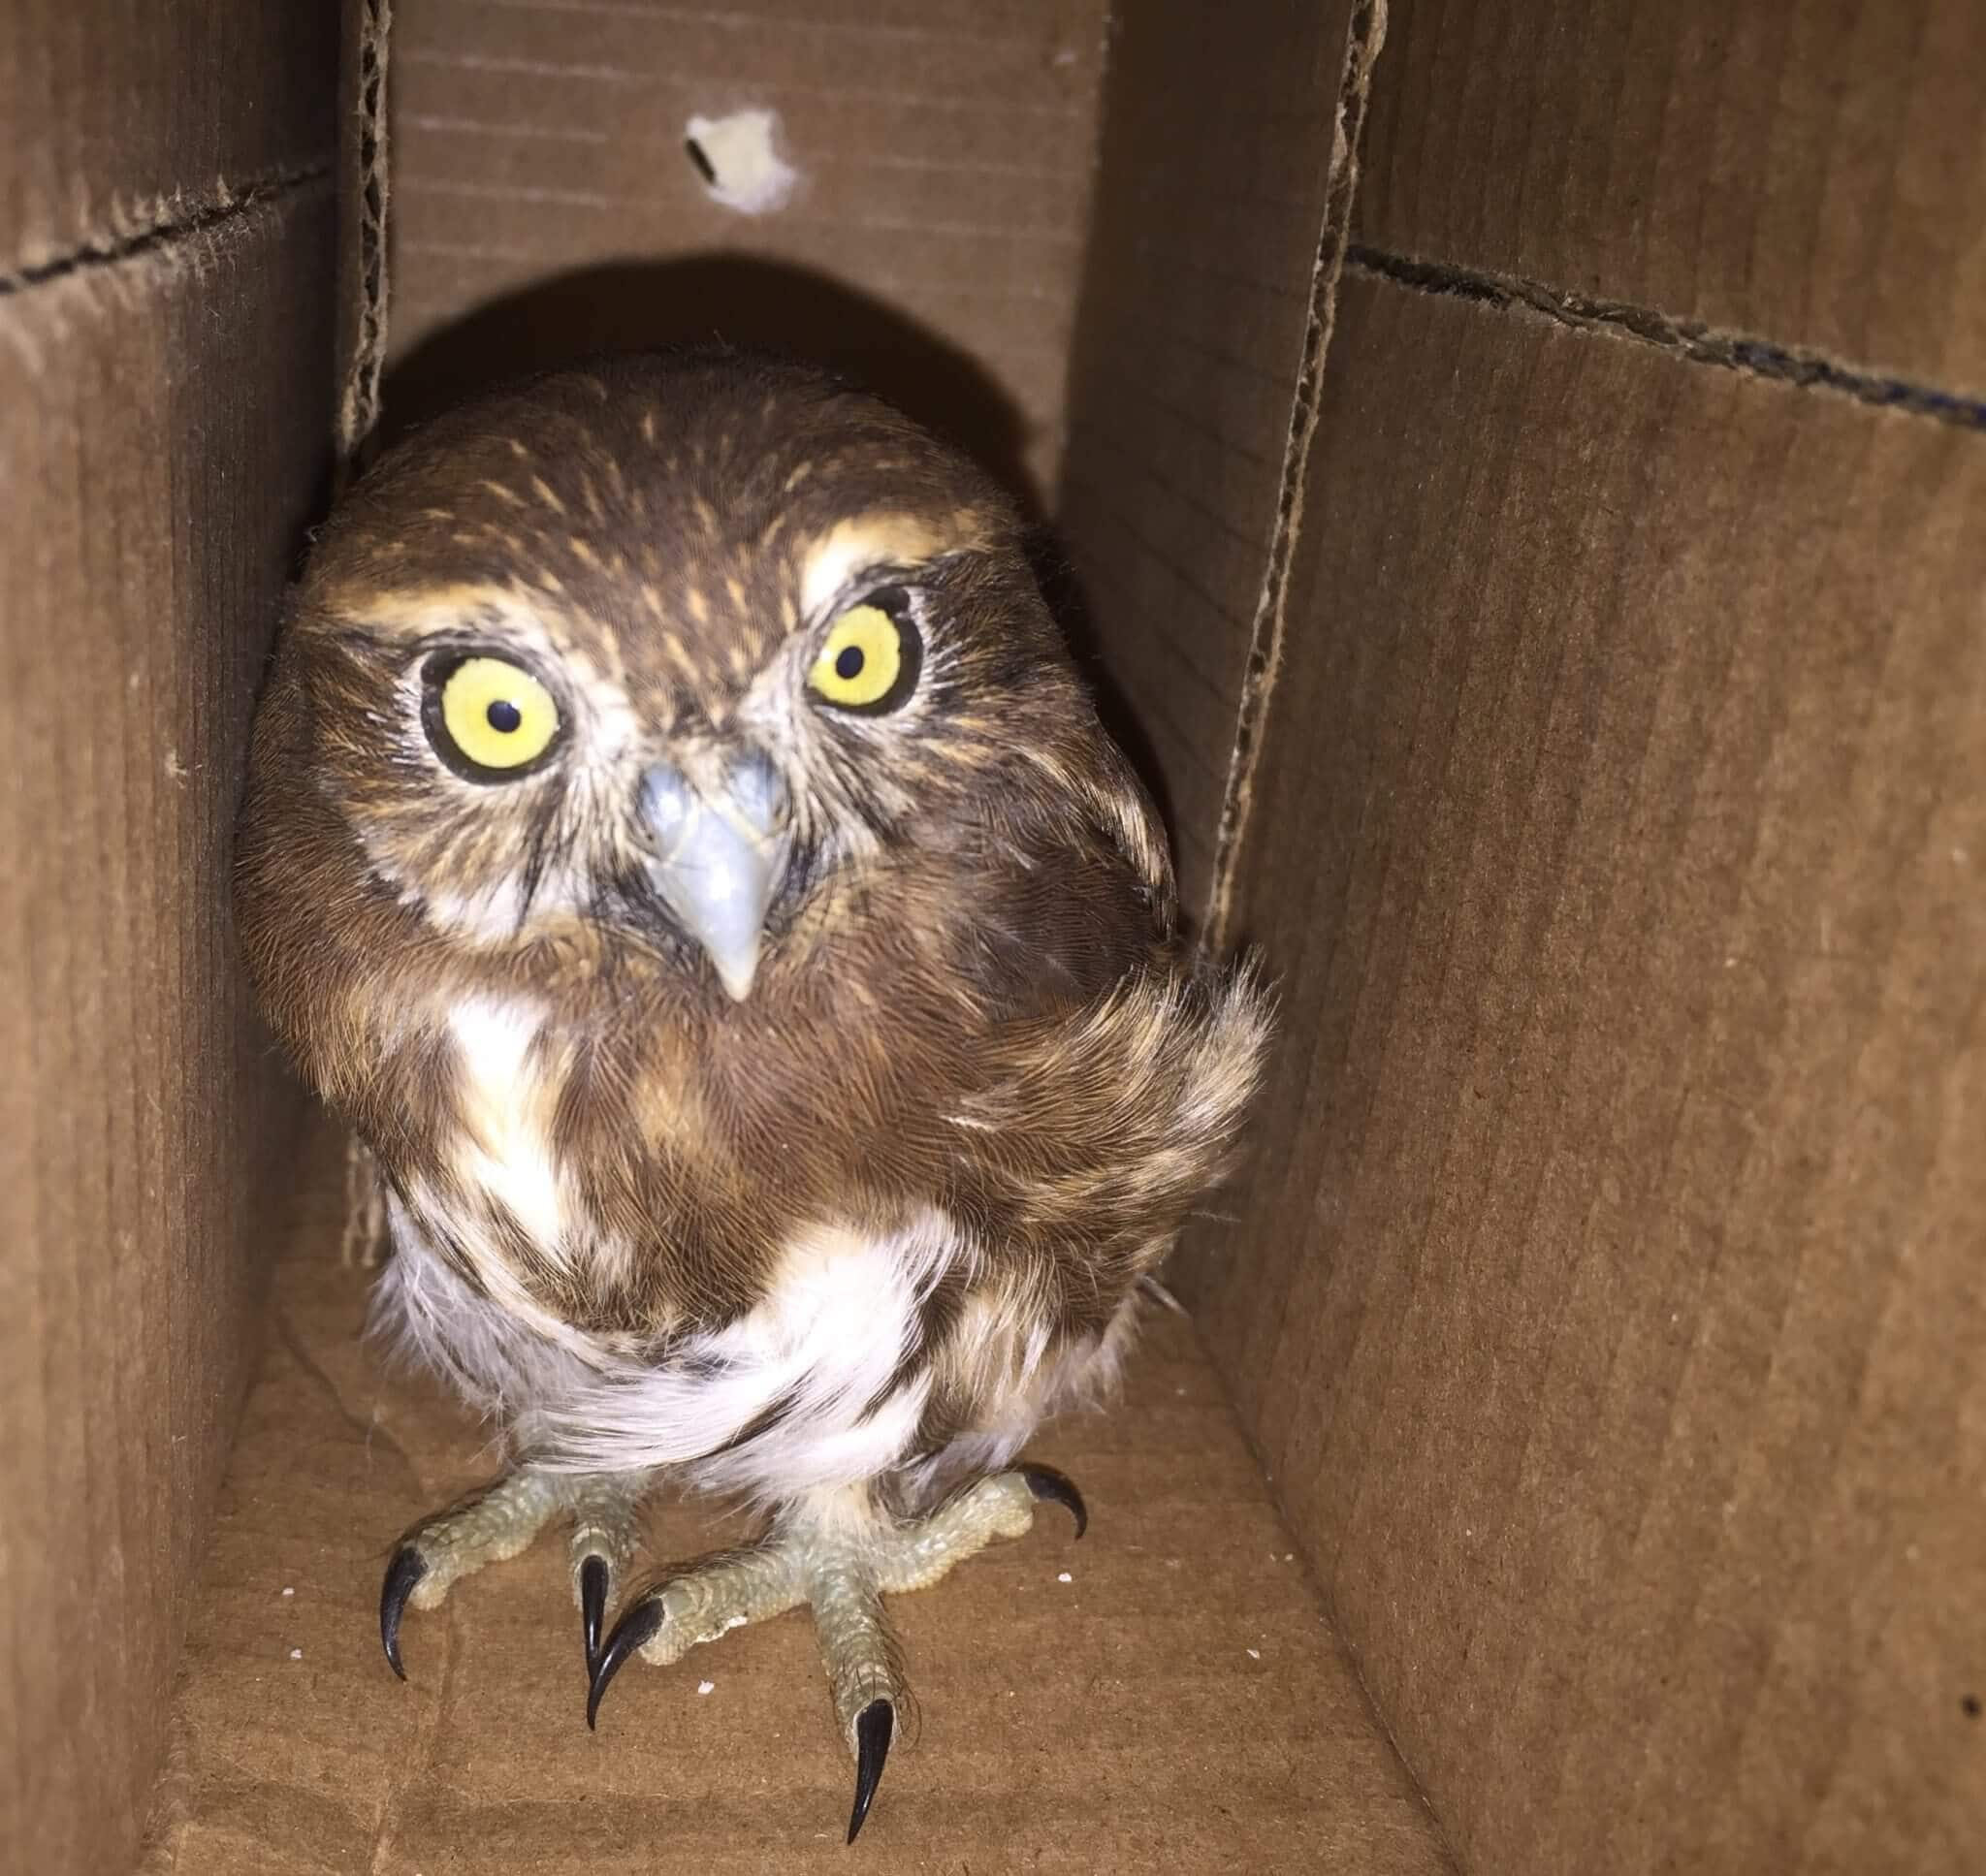 Pygmy Owl (<i> Glaucidium costaricanum </ i>) rescued in Puntarenas